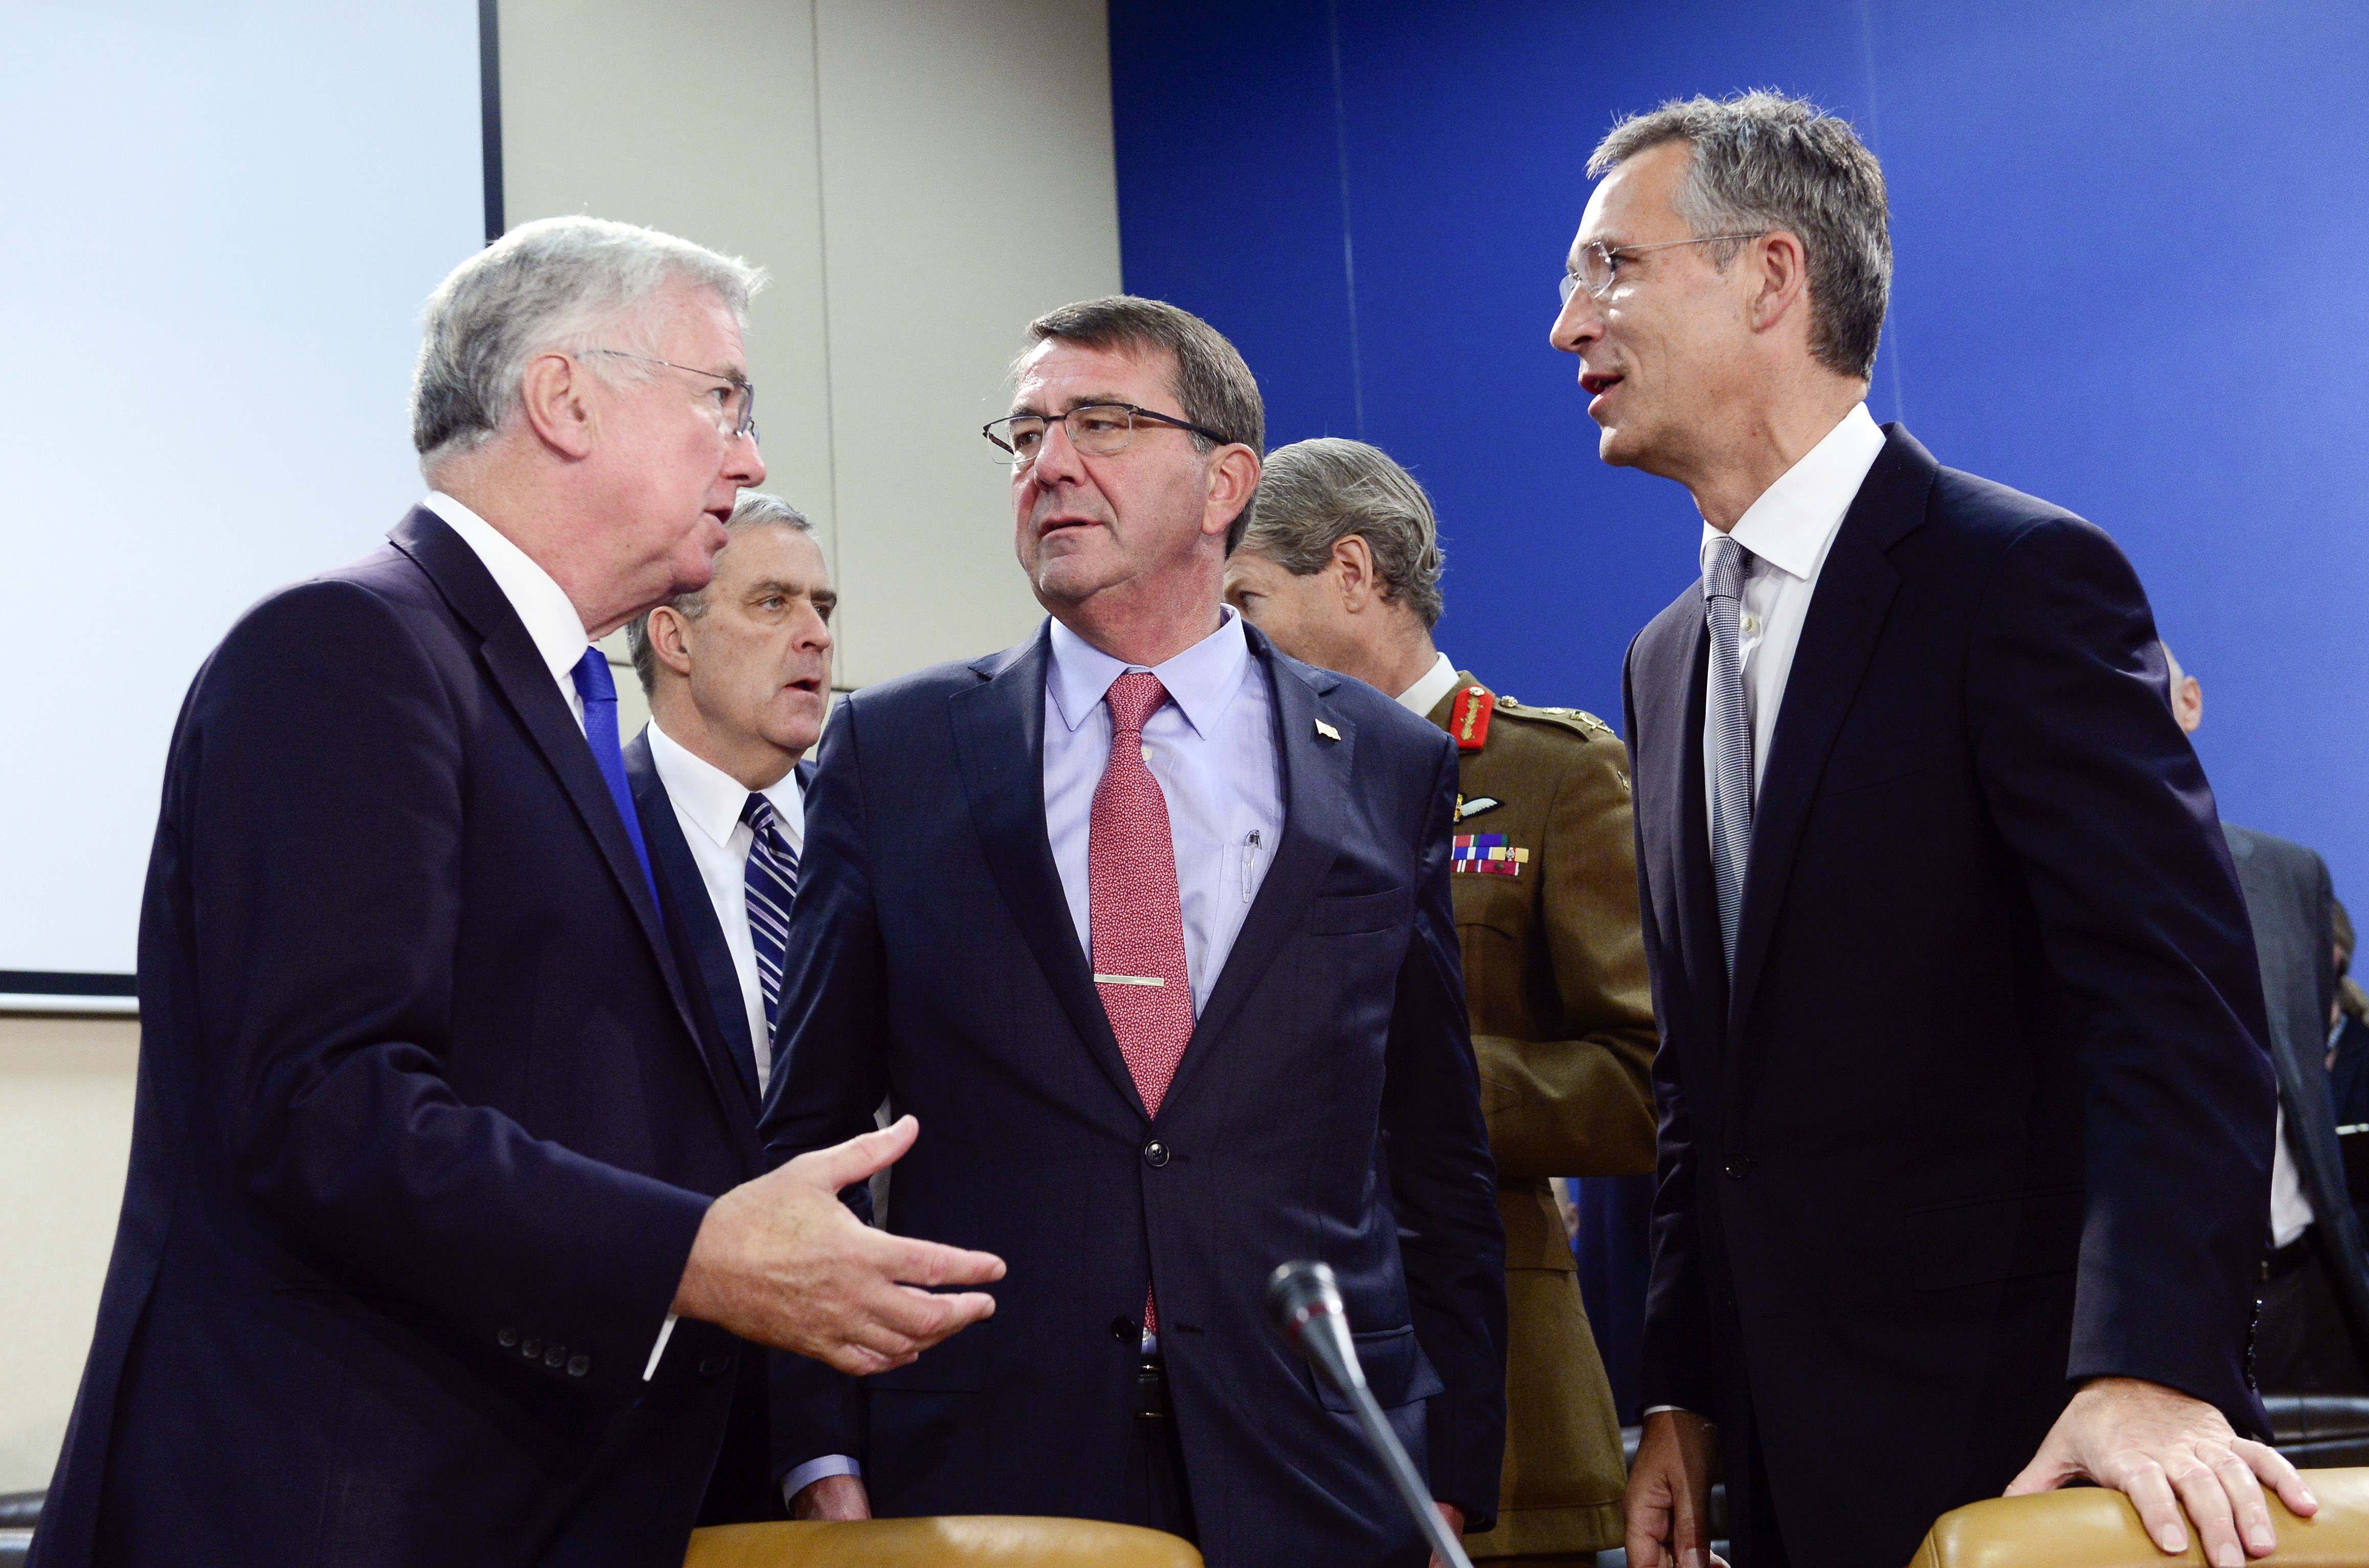 UK Defence Secretary Michael Fallon (left), U.S. Defense Secretary Ash Carter (center), and NATO Secretary-General Jens Stoltenberg confer during a meeting of defense ministers at NATO headquarters in Brussels on October 8. [Photo credit: John Thys /AFP/Getty Images]